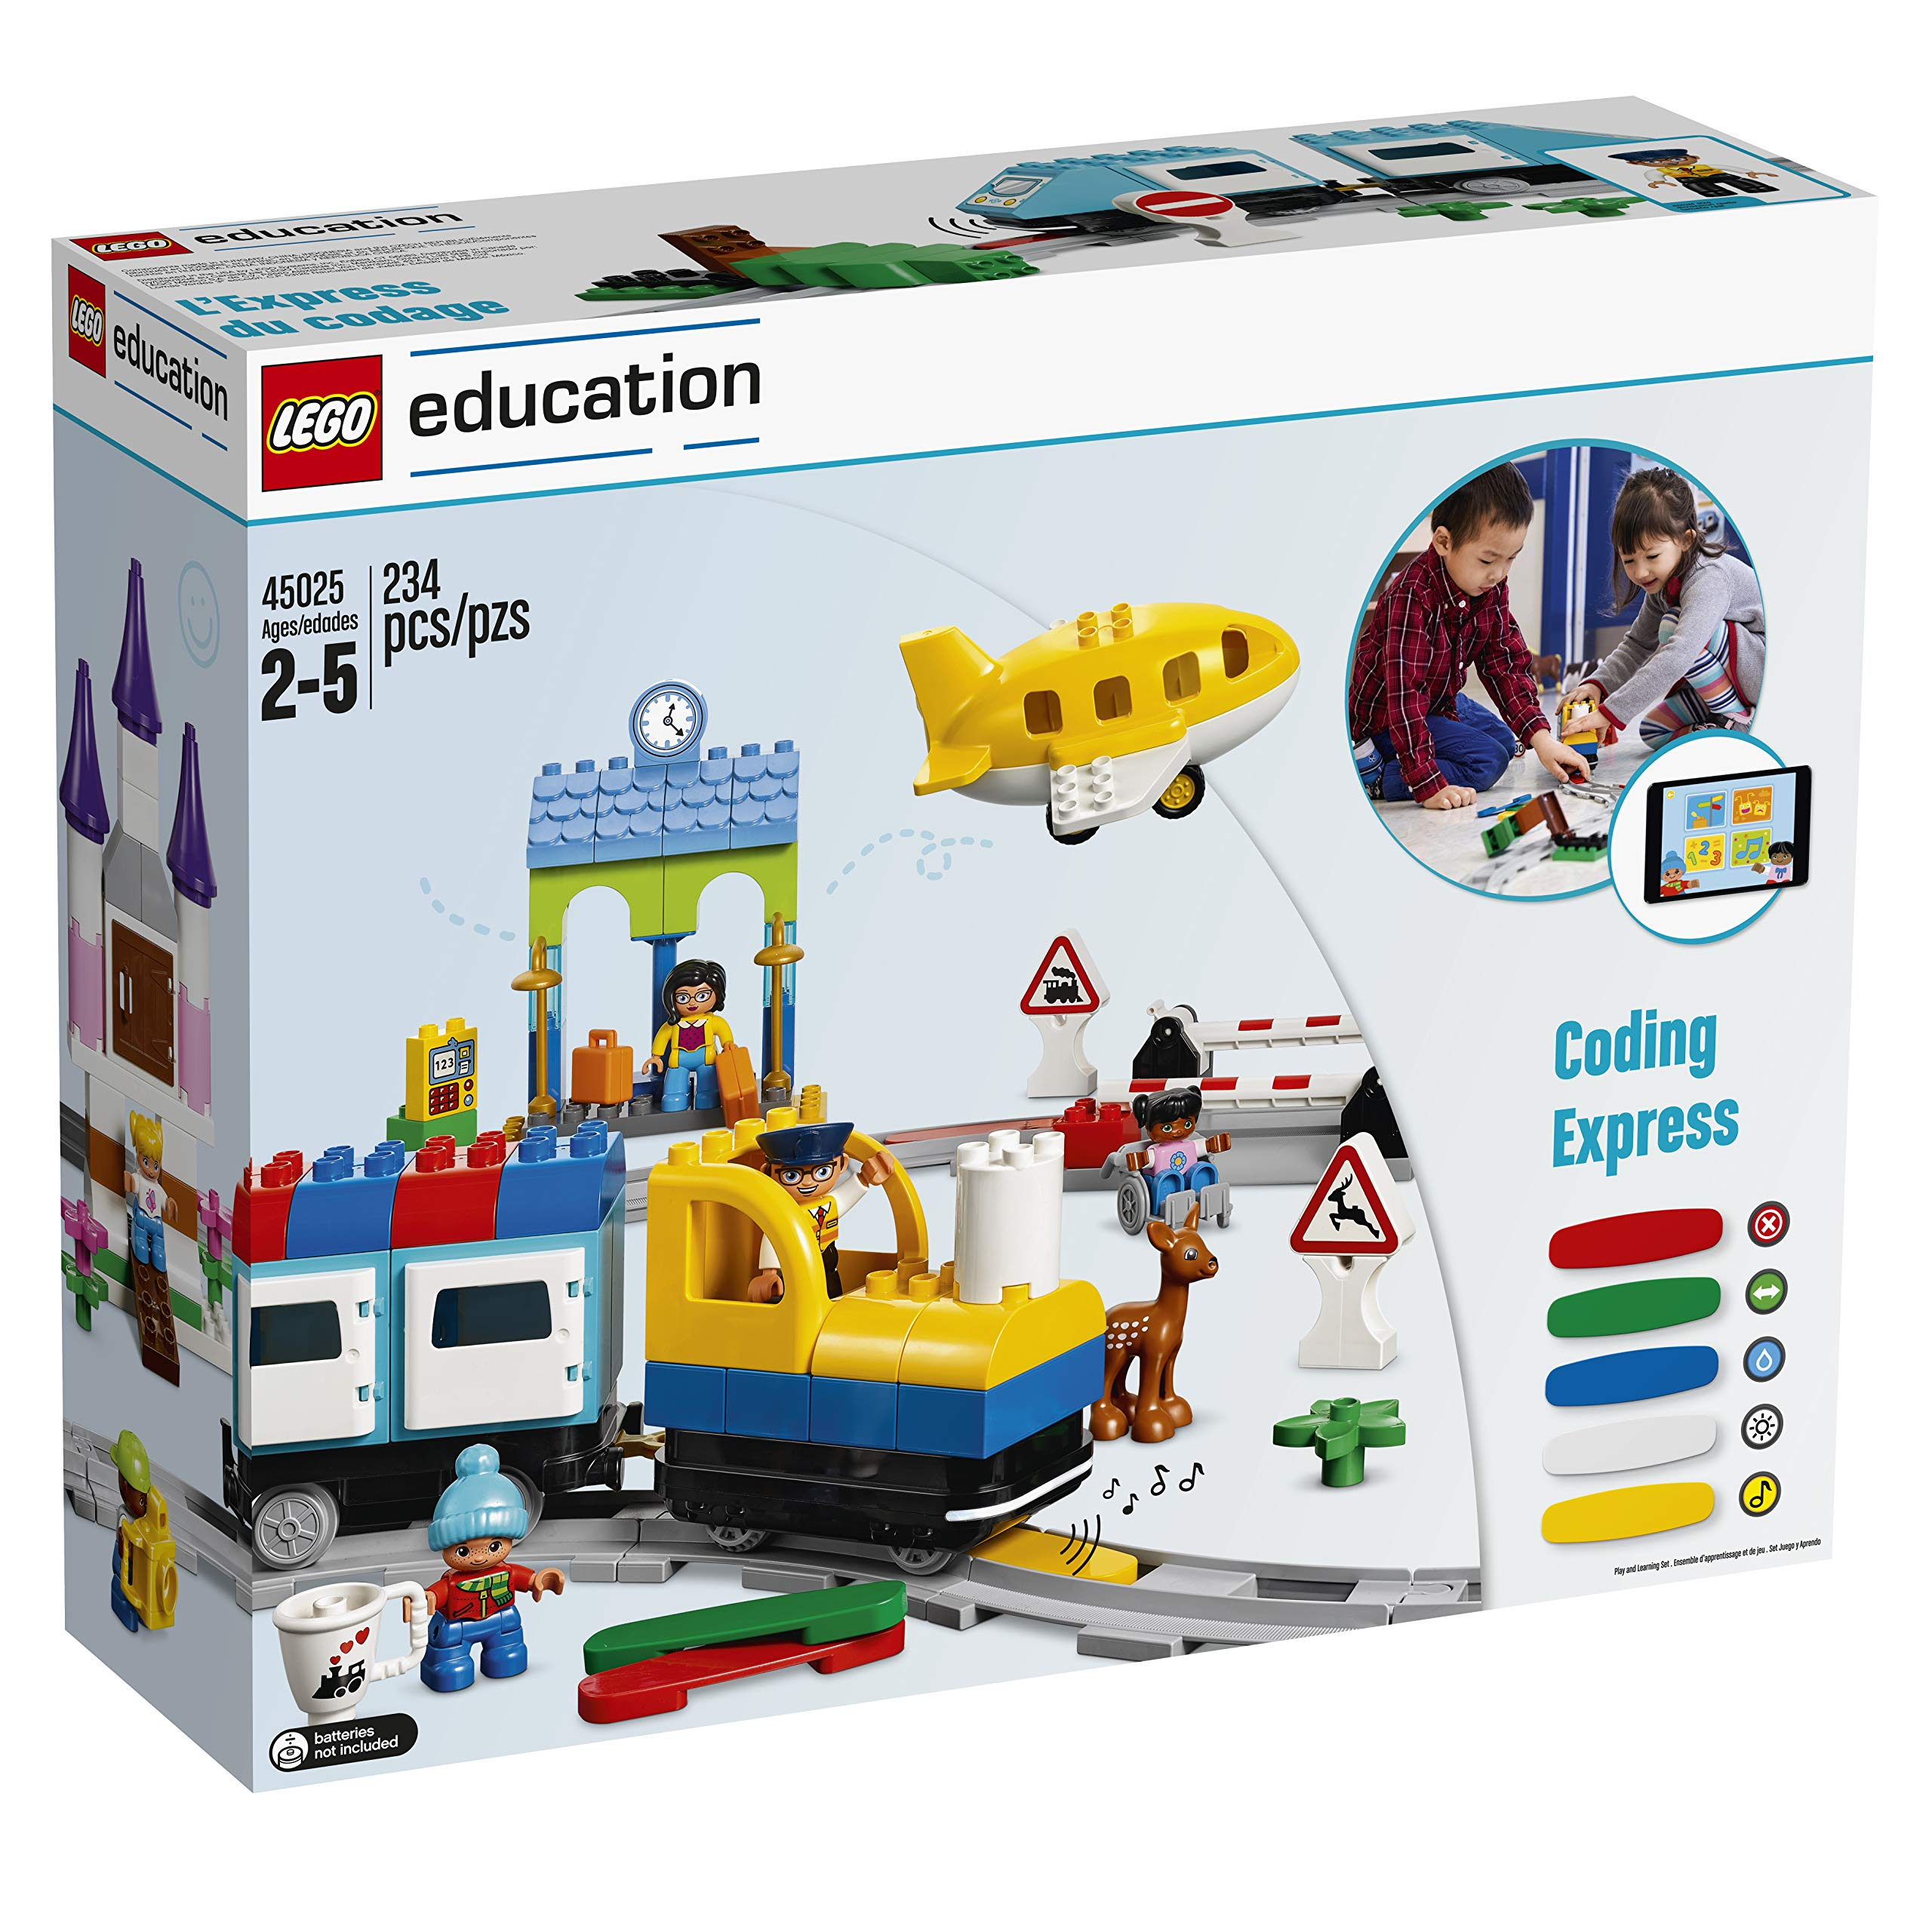 LEGO Education Duplo Coding Express 45025, Fun STEM Educational Toy, Introduction to Steam Learning for Girls & Boys Ages 2 & Up (234Piece ) by LEGO Education (Image #1)